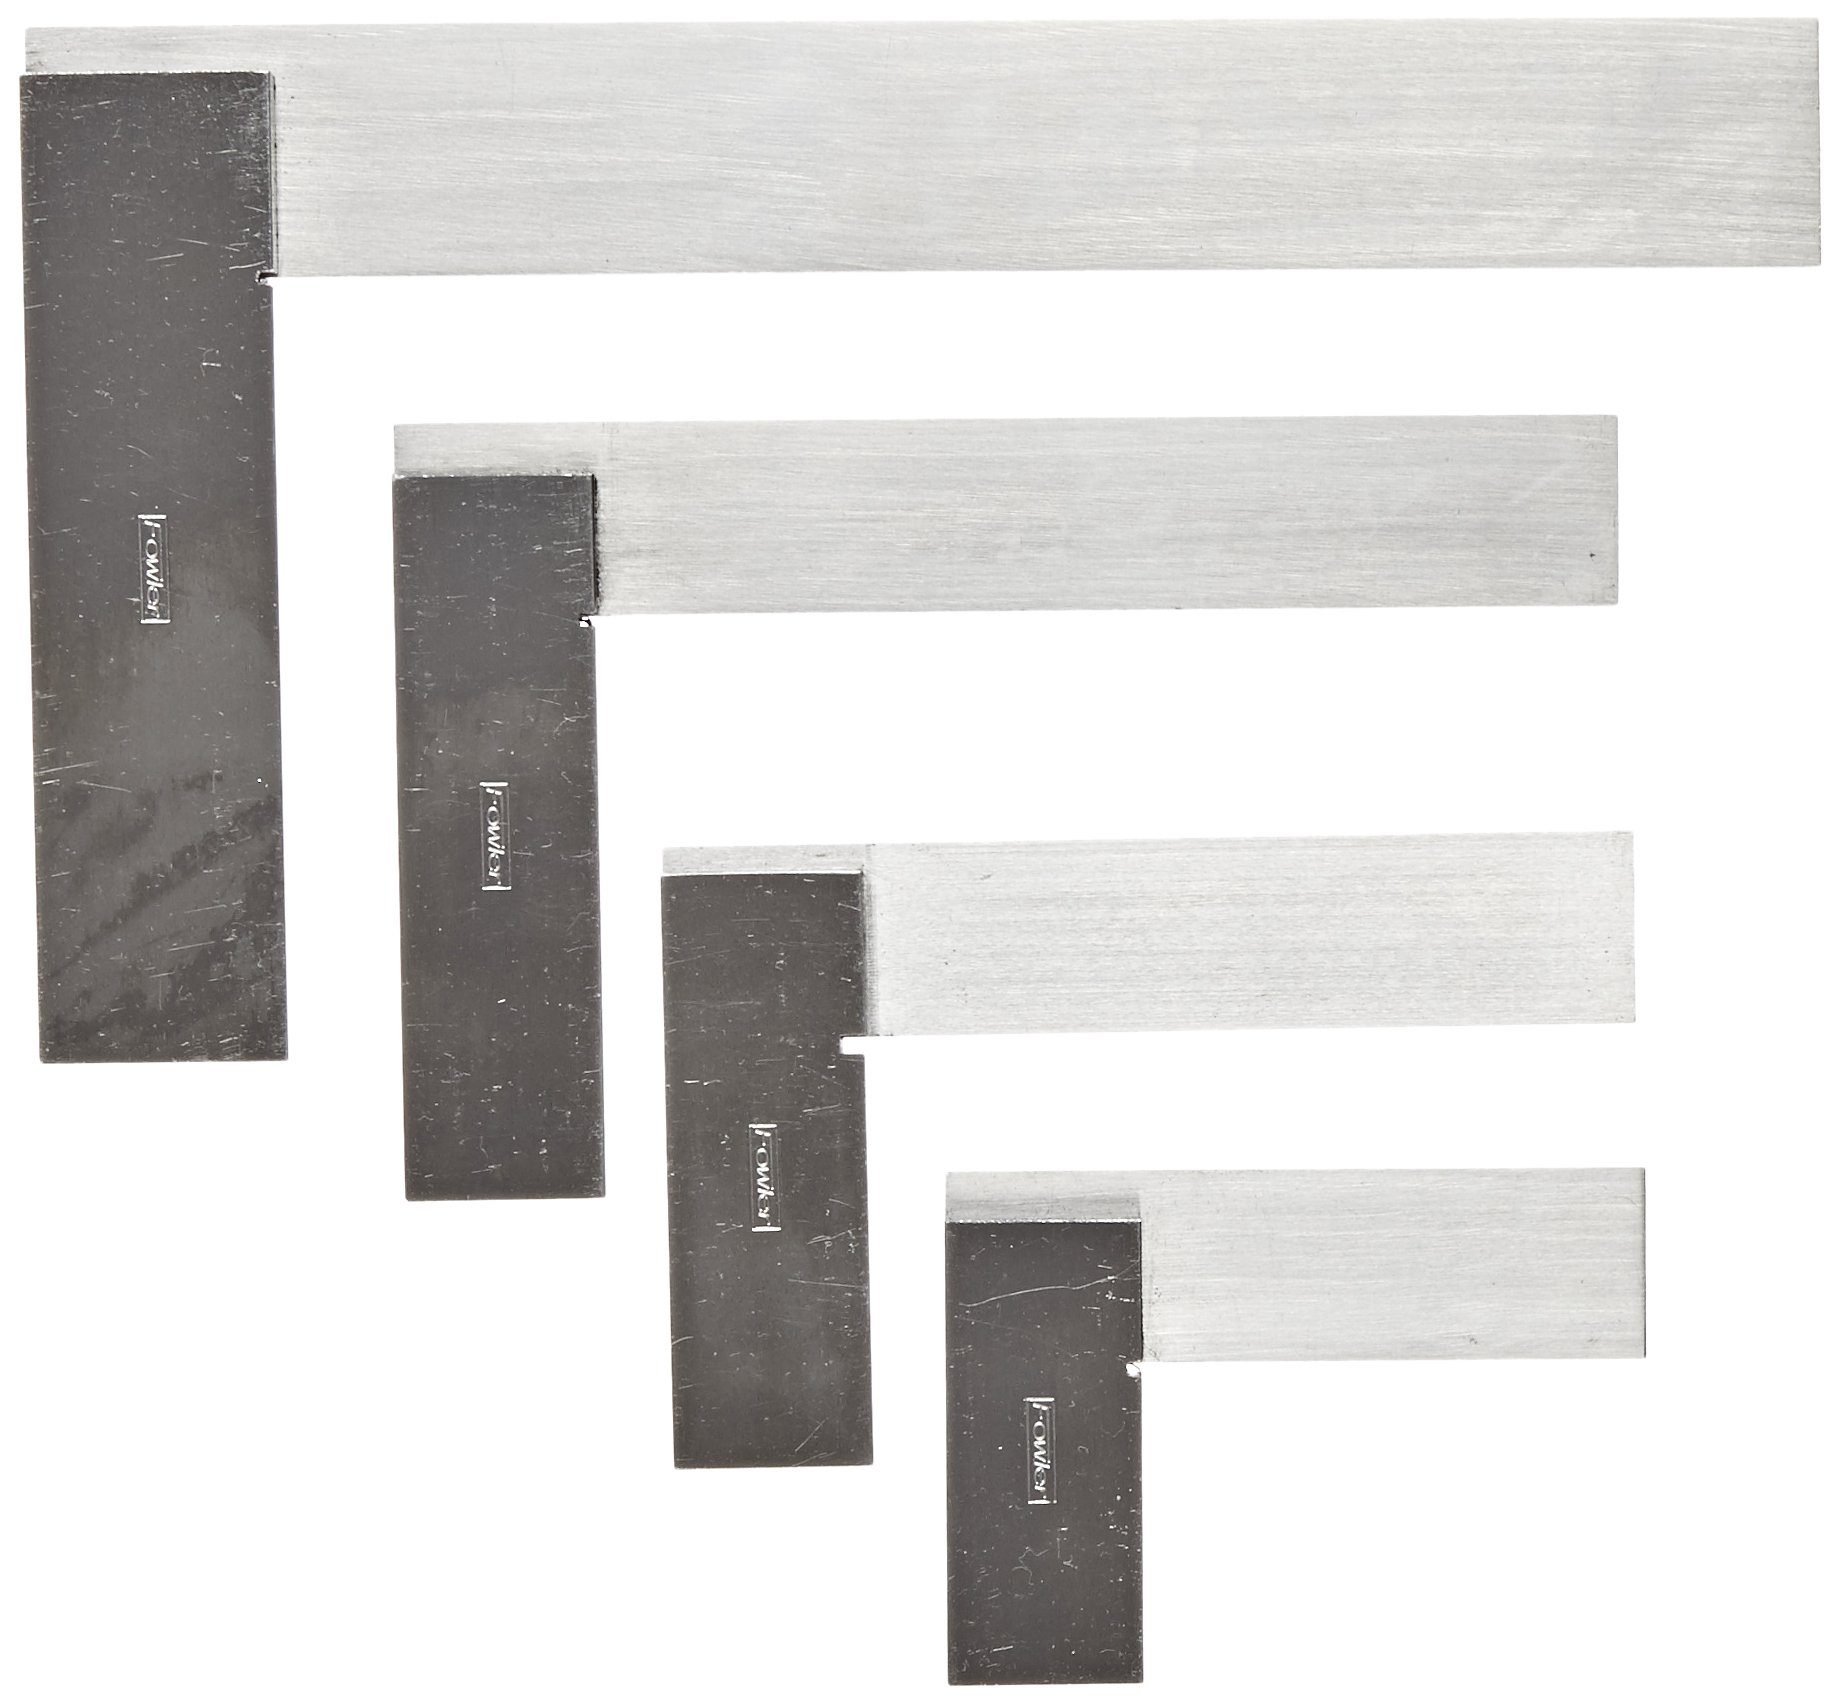 Fowler Full Warranty 52-432-246-0 Machinist Hardened Steel Square Set, 2'', 3'',4'',and 6'' Blade Size